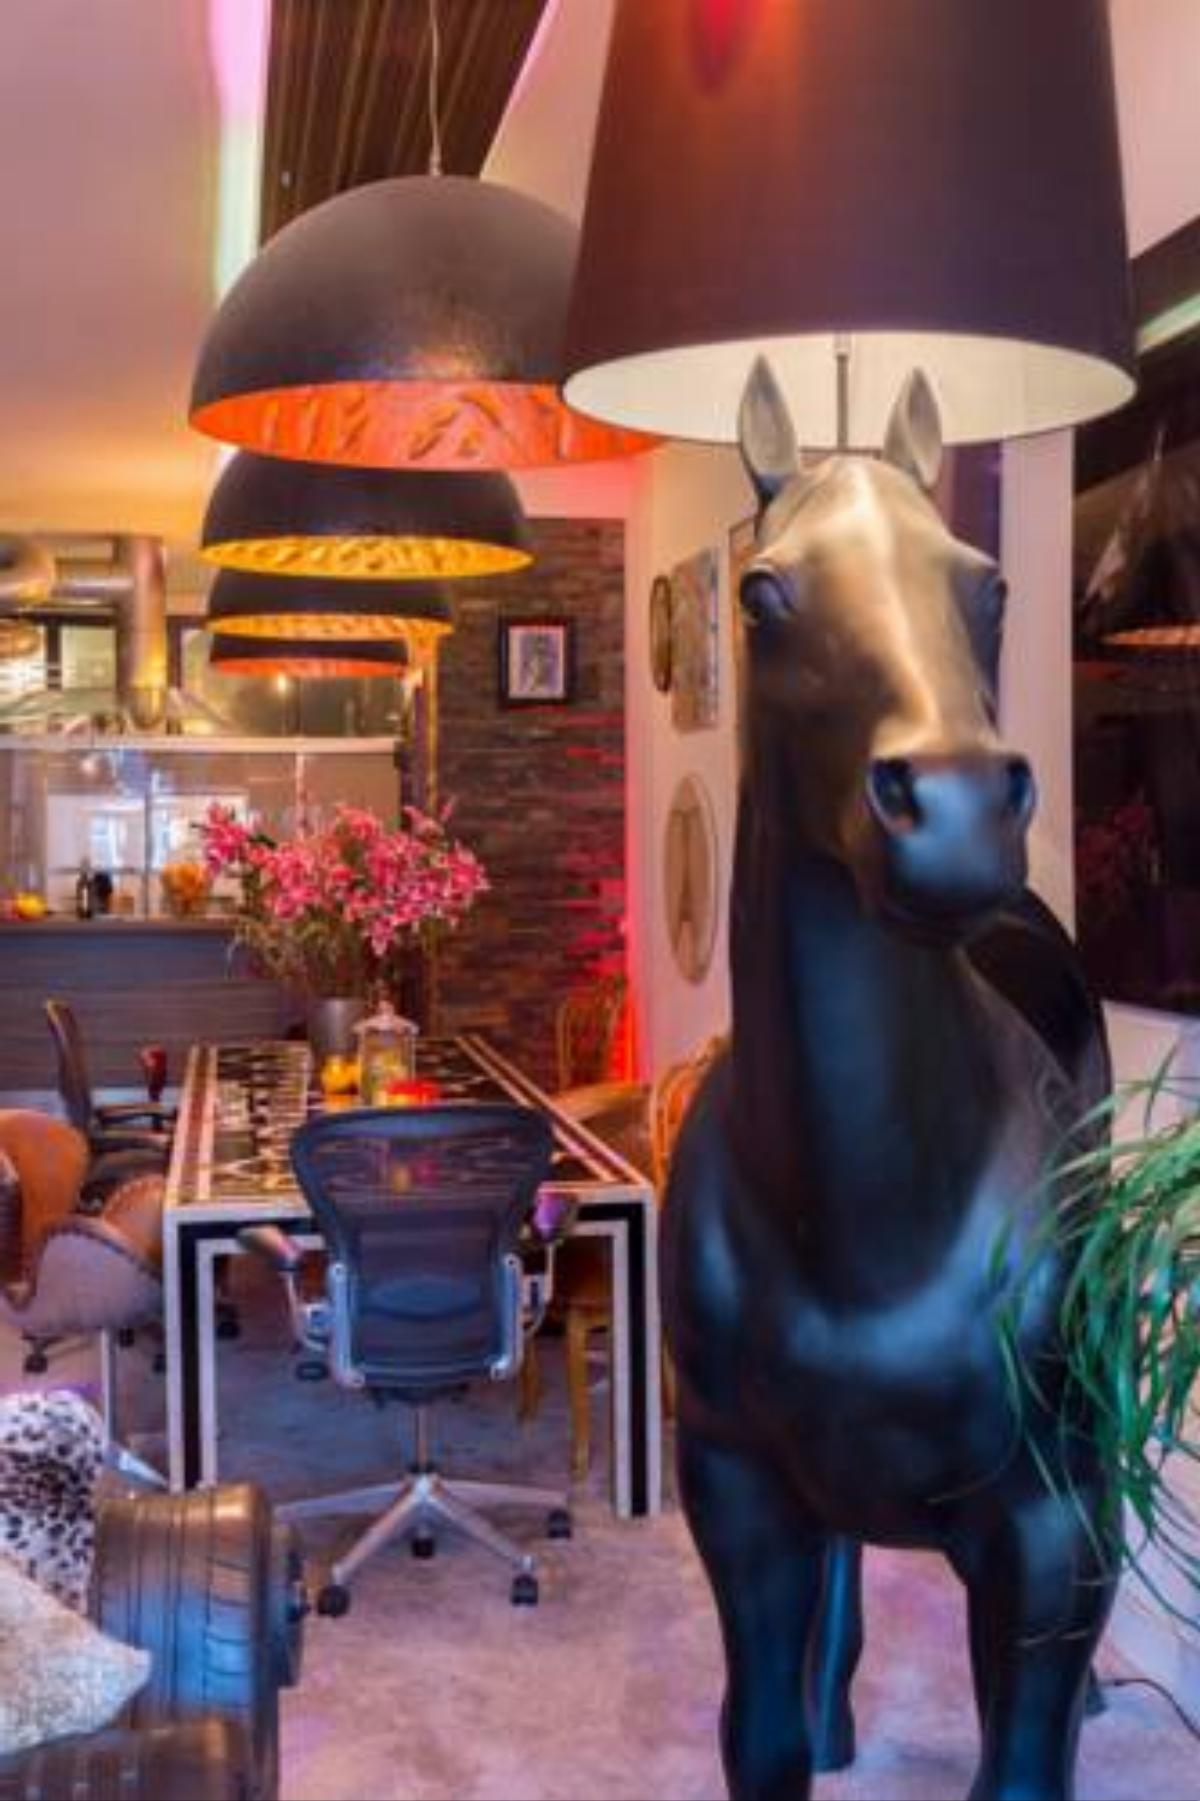 180 M2 CENTRAL ....ART ...LOFT ..JACUZZI...HORSE.. Hotel Amsterdam Netherlands